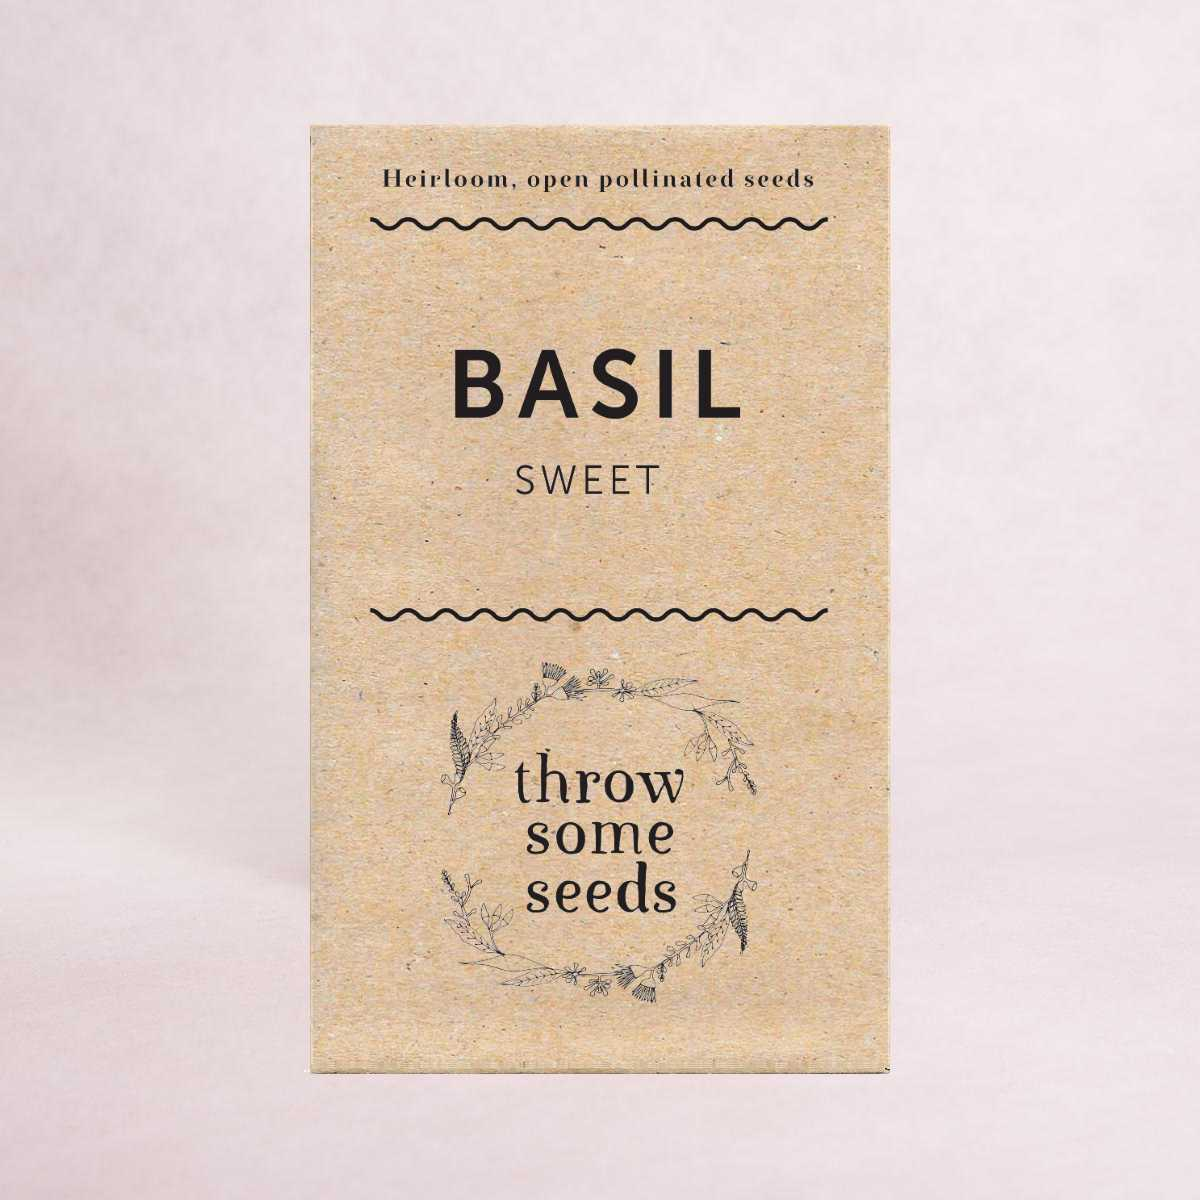 Basil (Sweet) - Heirloom Seeds - Seeds - Throw Some Seeds